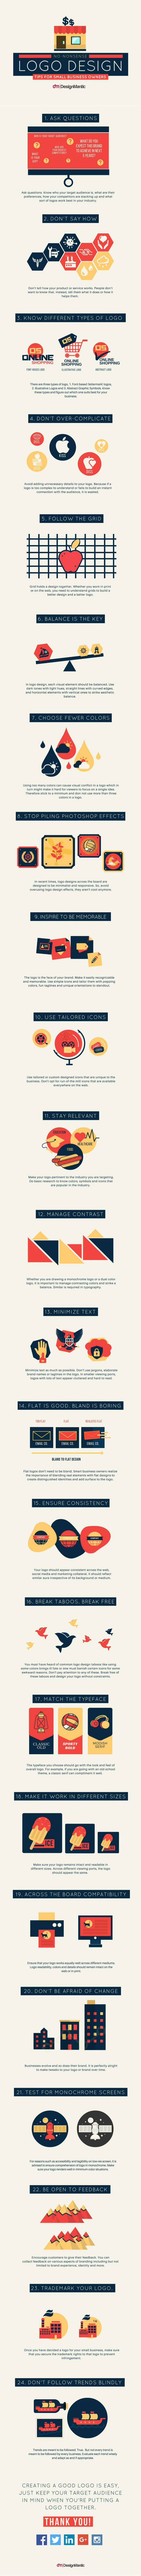 Small Business Owner Logo Design Tips Infographic